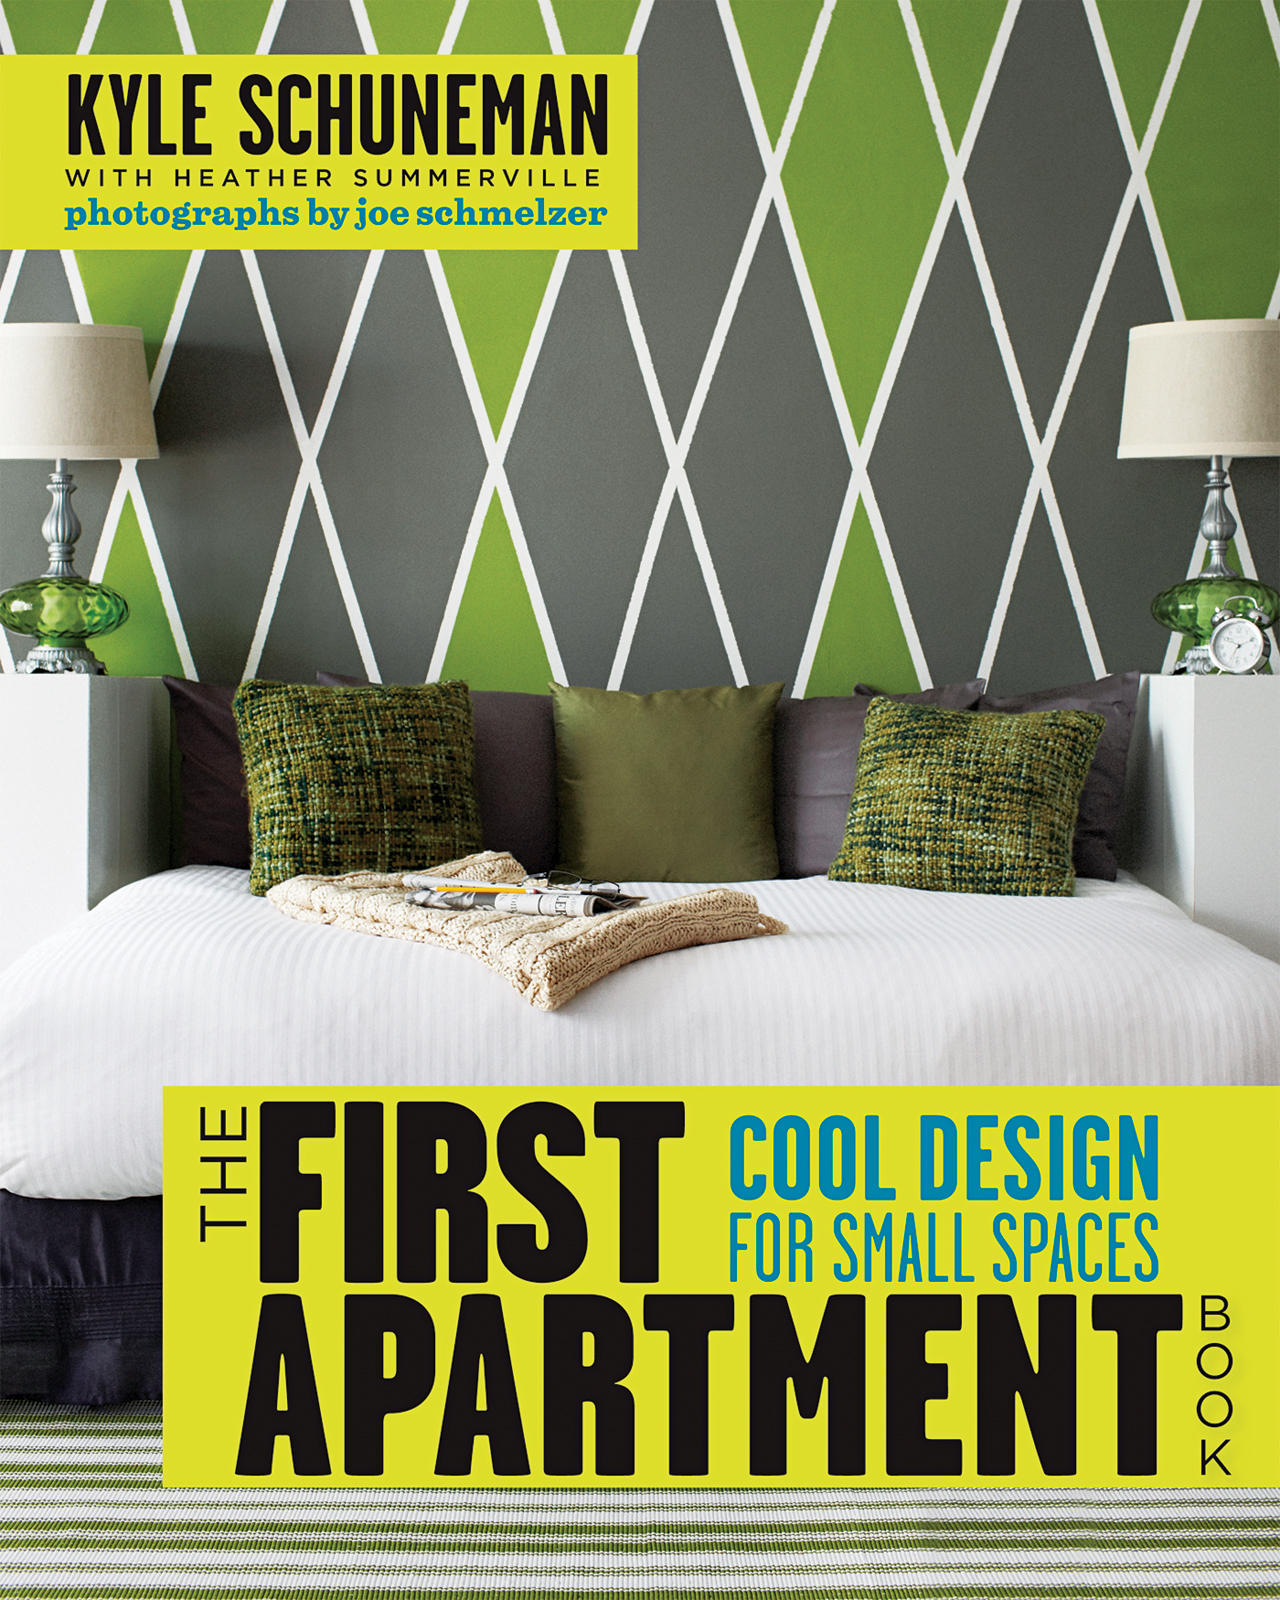 The First Apartment Book by designer Kyle Schuneman